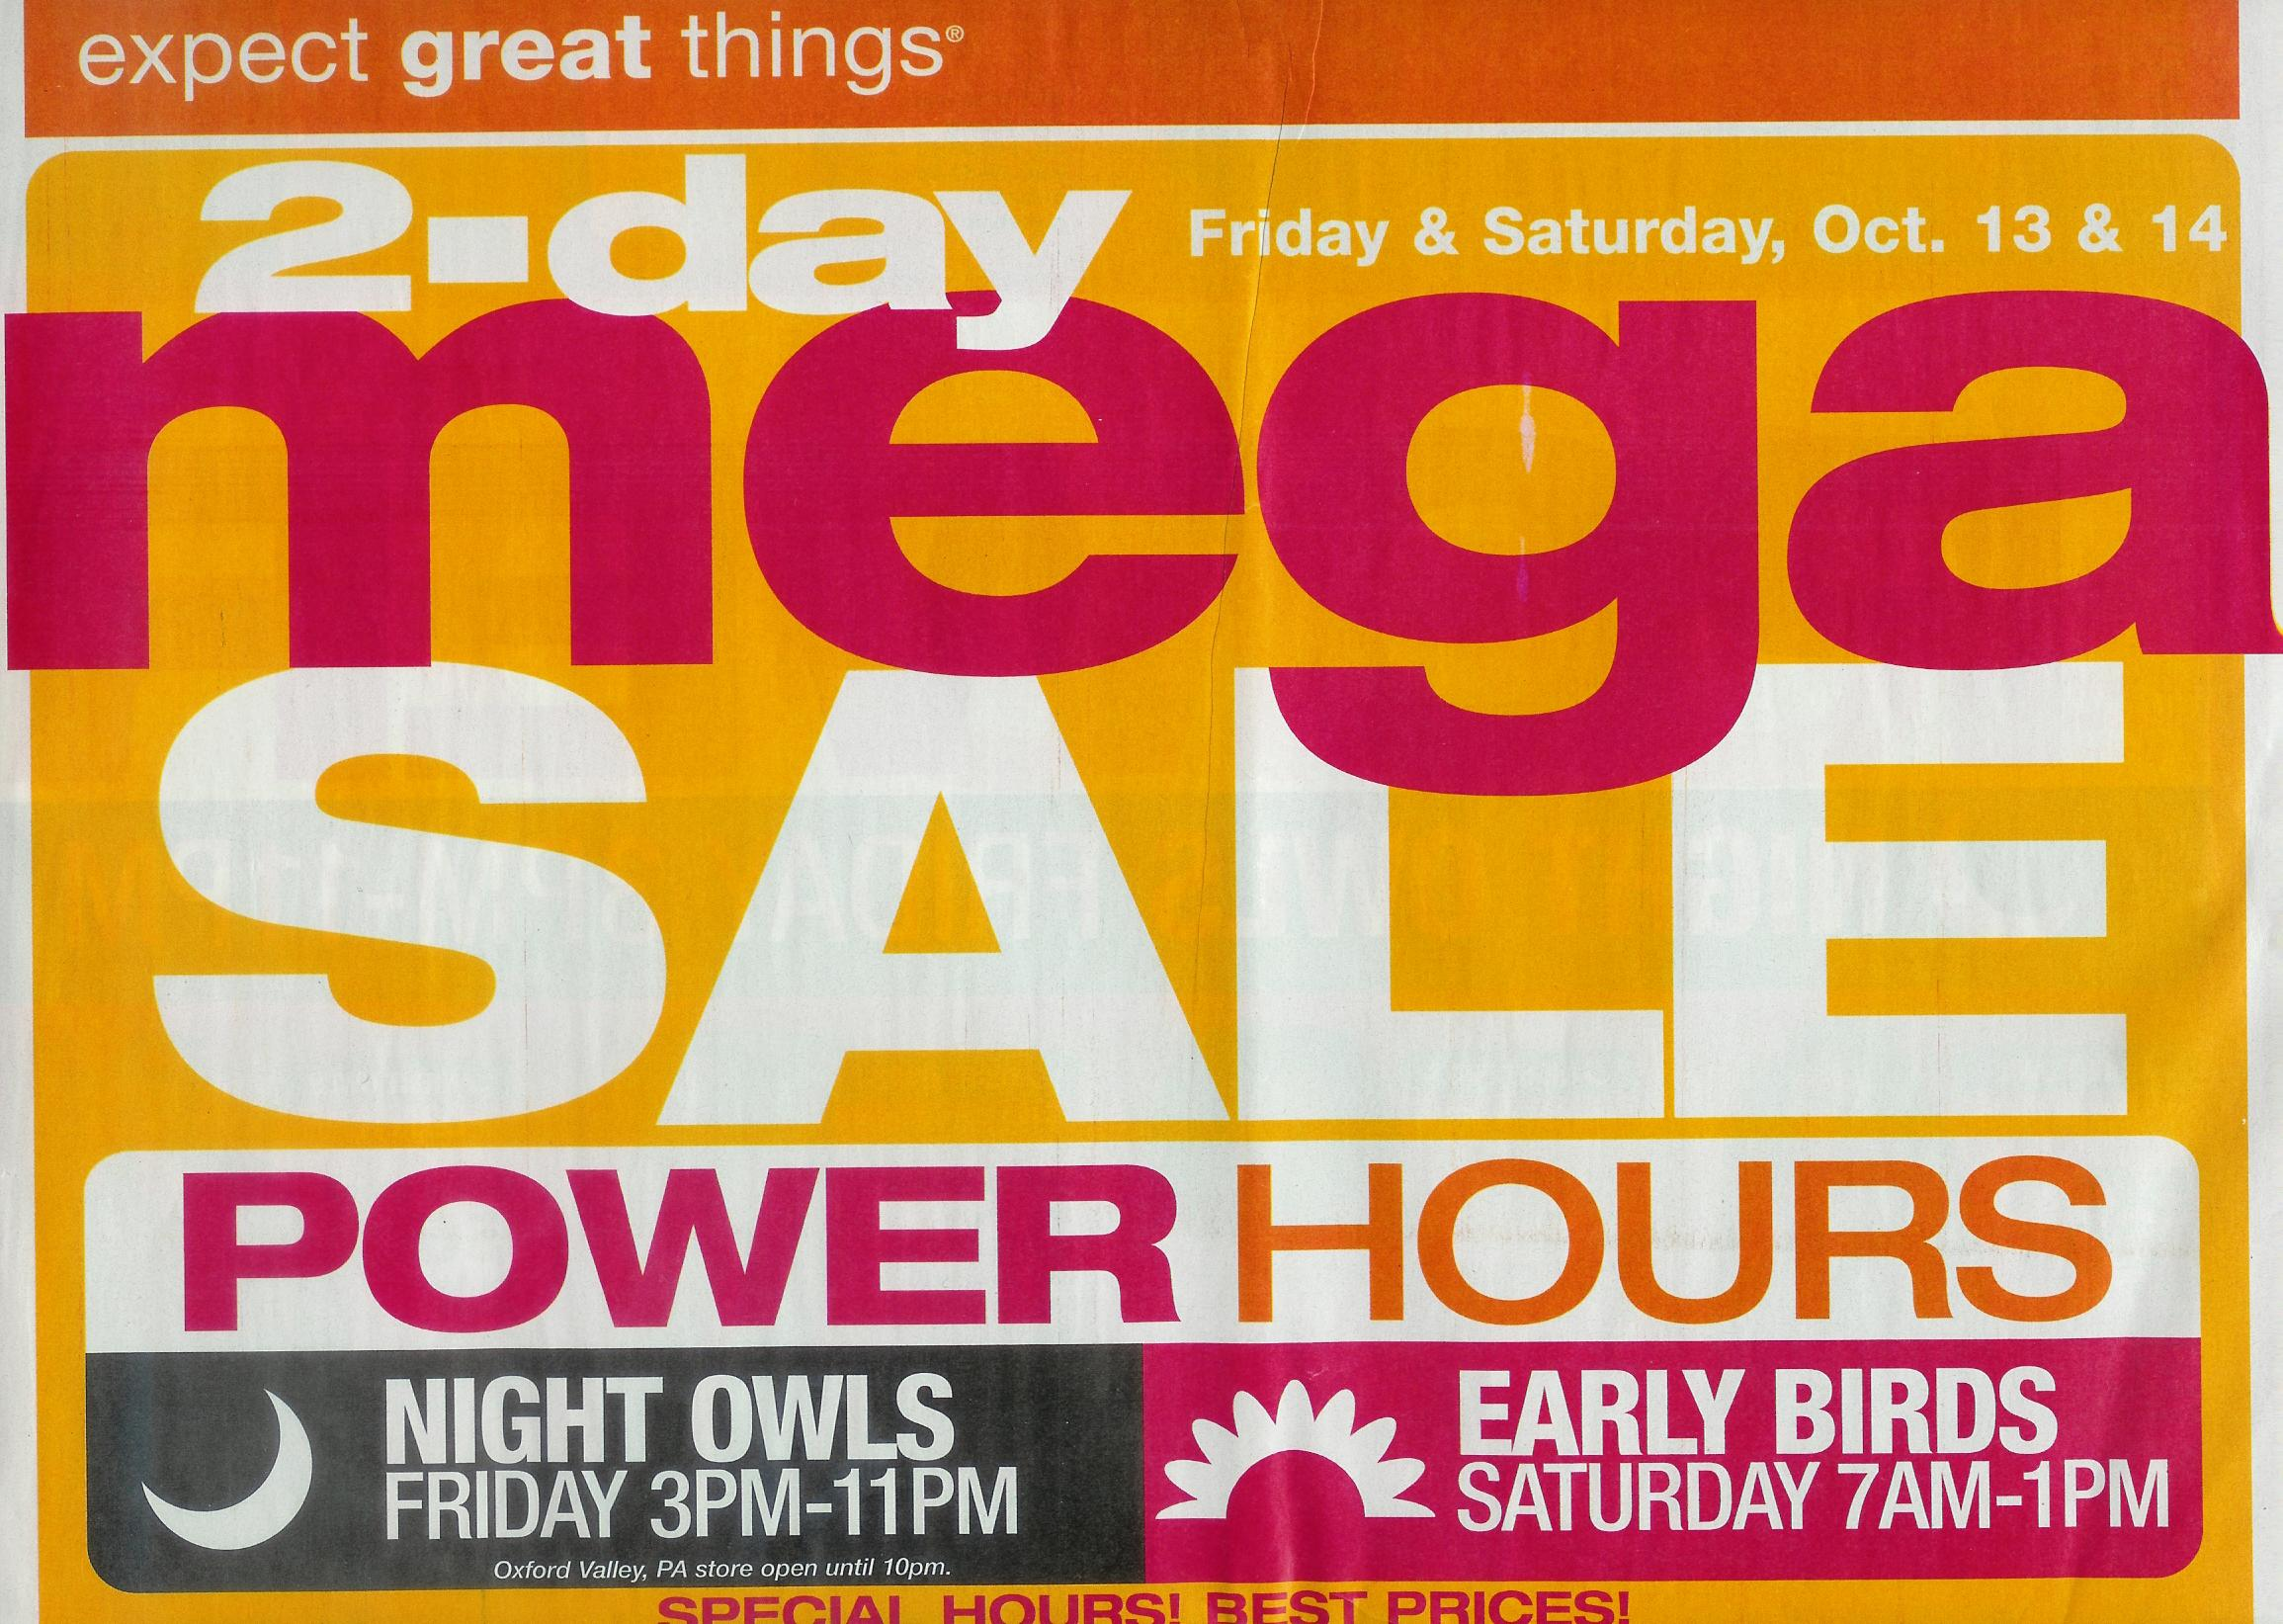 kohls-2-day-mega-sale